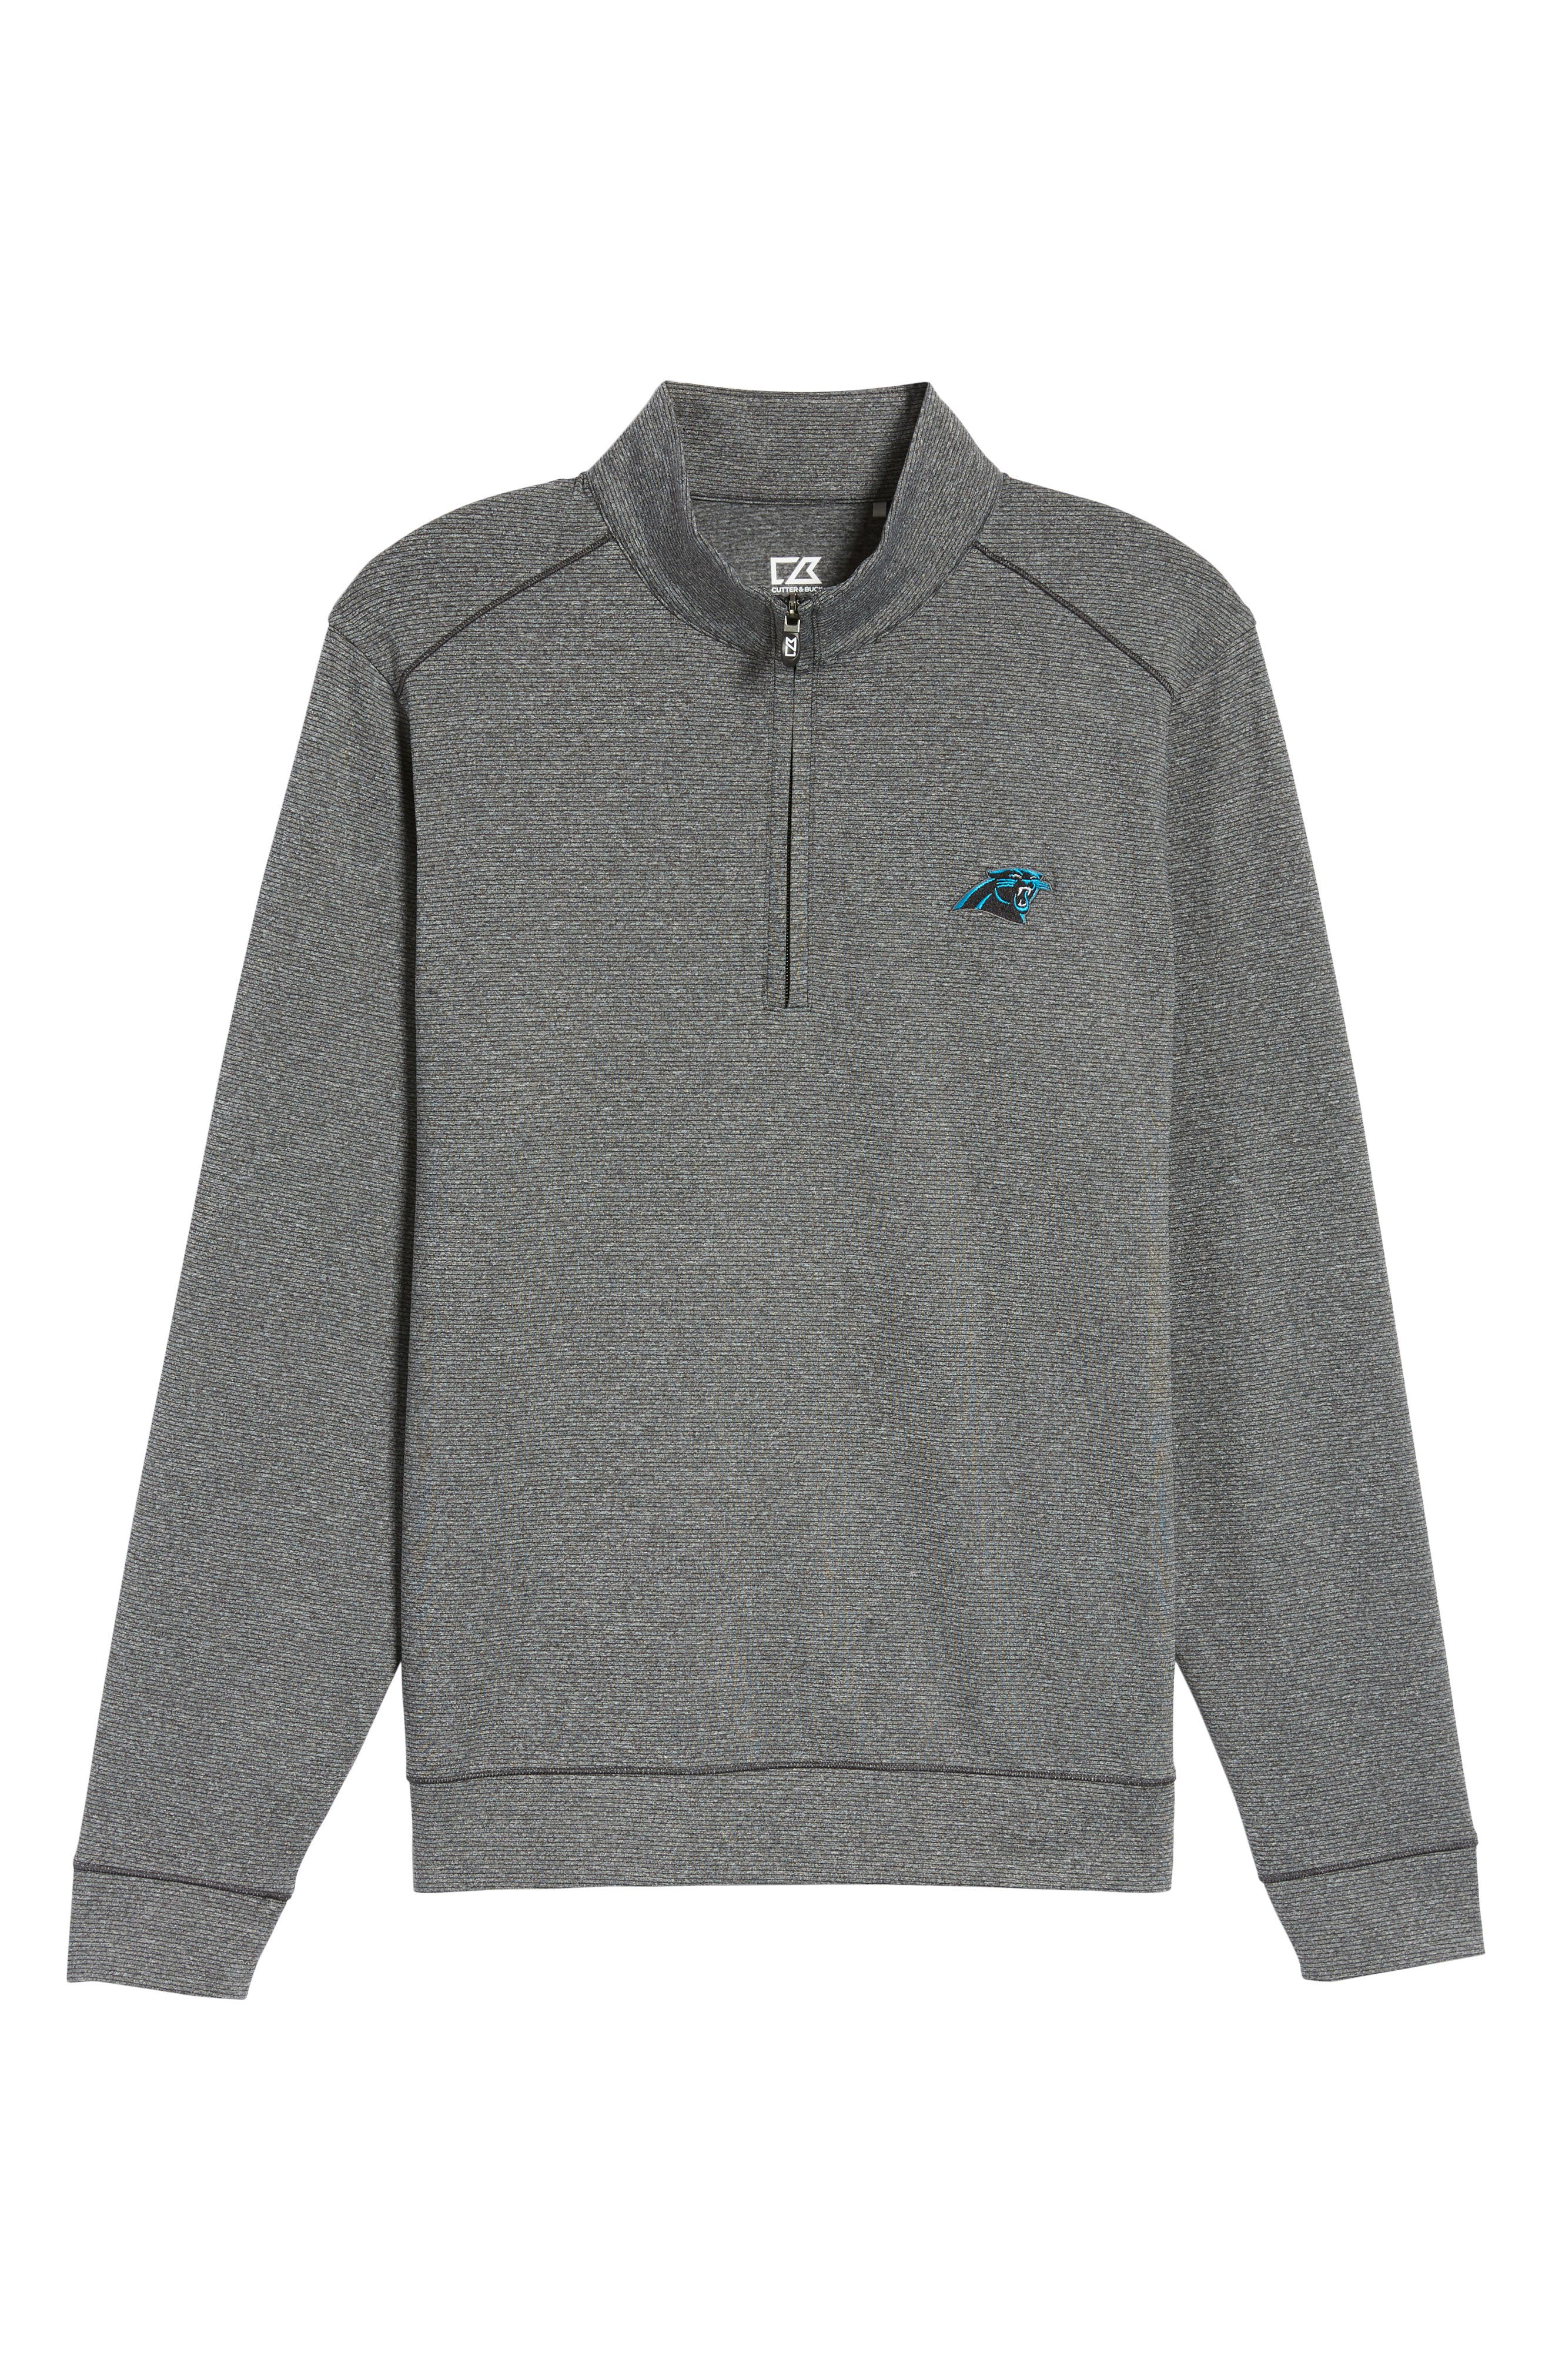 Shoreline - Carolina Panthers Half Zip Pullover,                             Alternate thumbnail 6, color,                             Charcoal Heather